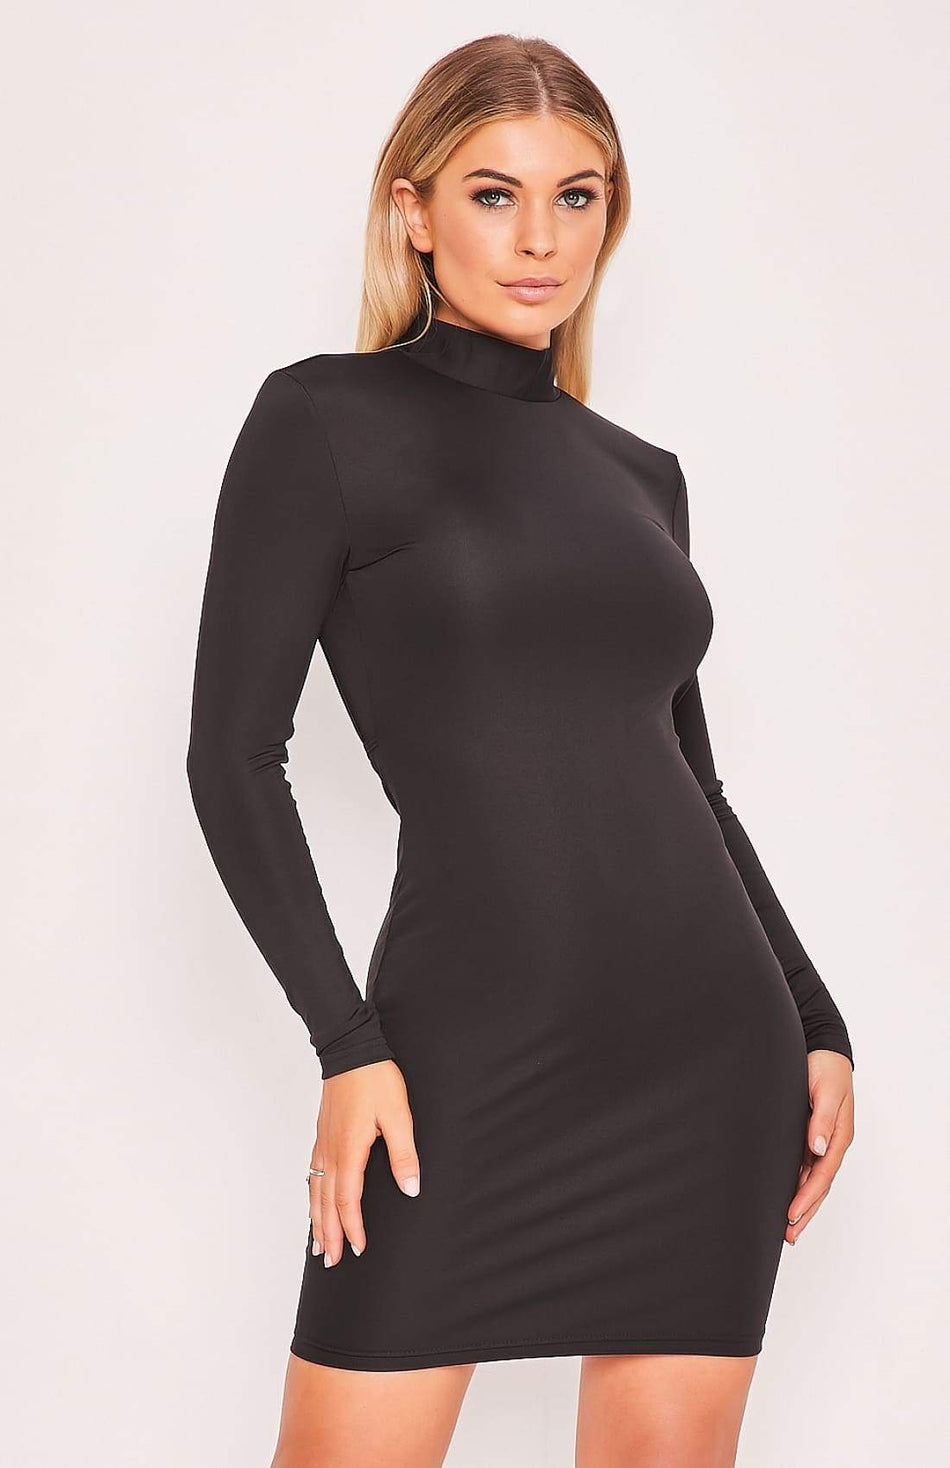 Black Long Sleeve Open Back High Neck Bodycon Dress